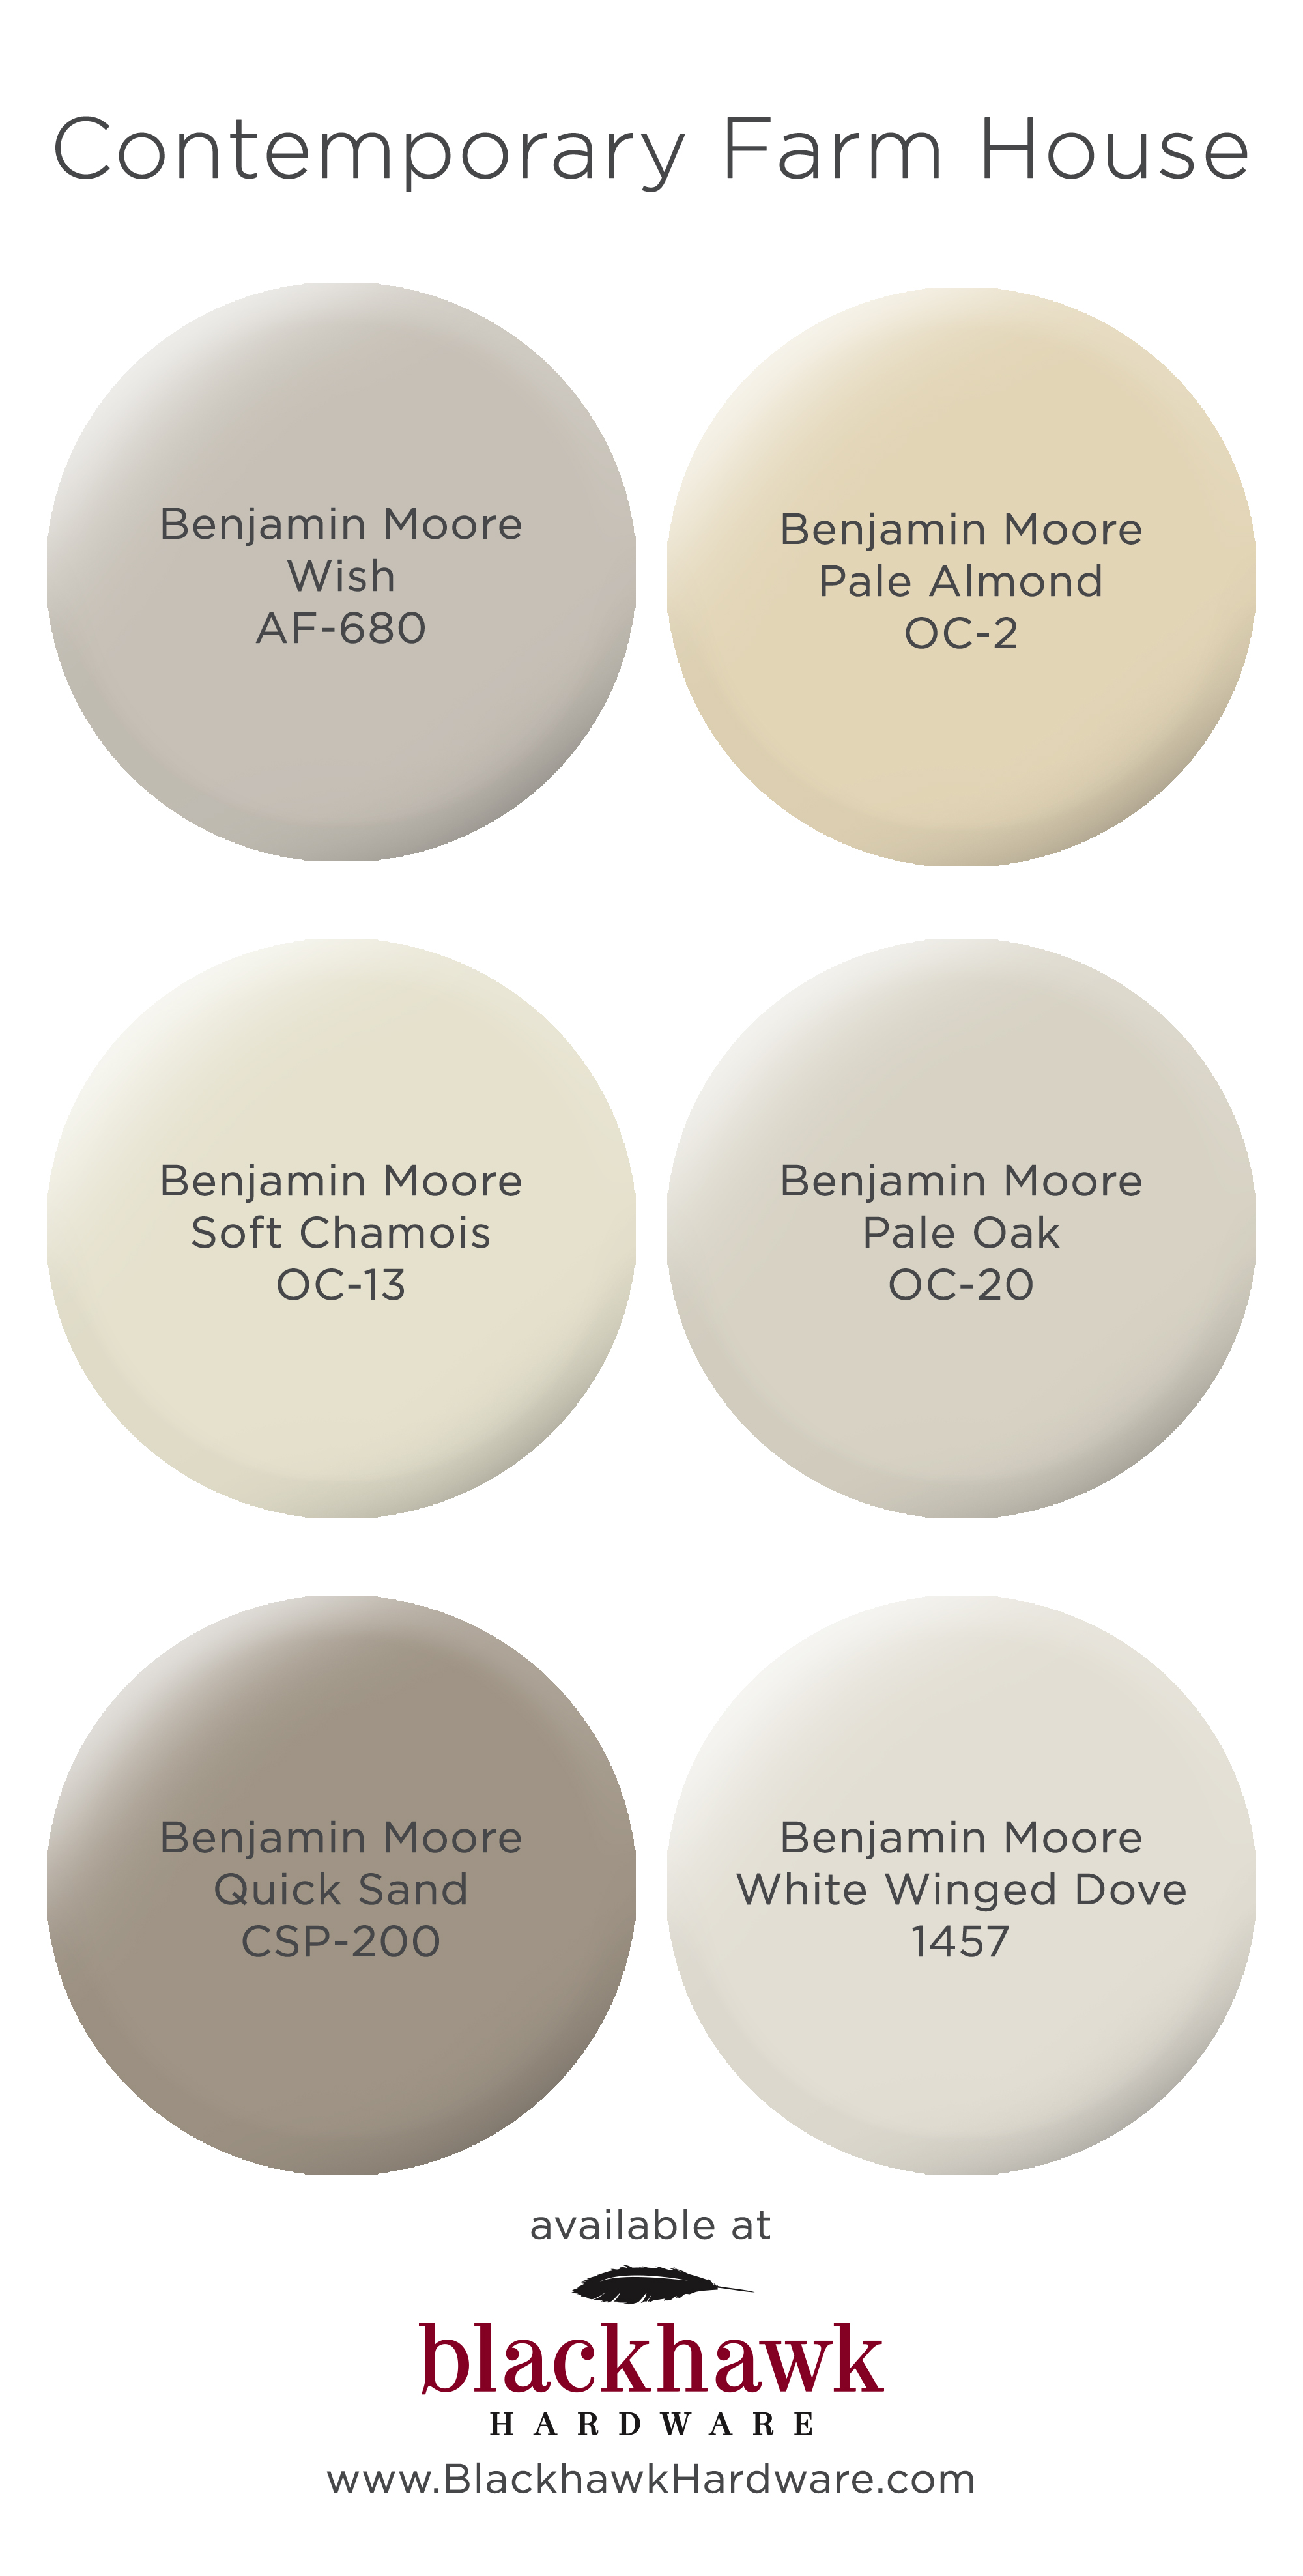 Paint colors for modern farm house interior design - Benjamin moore interior paint colors ...